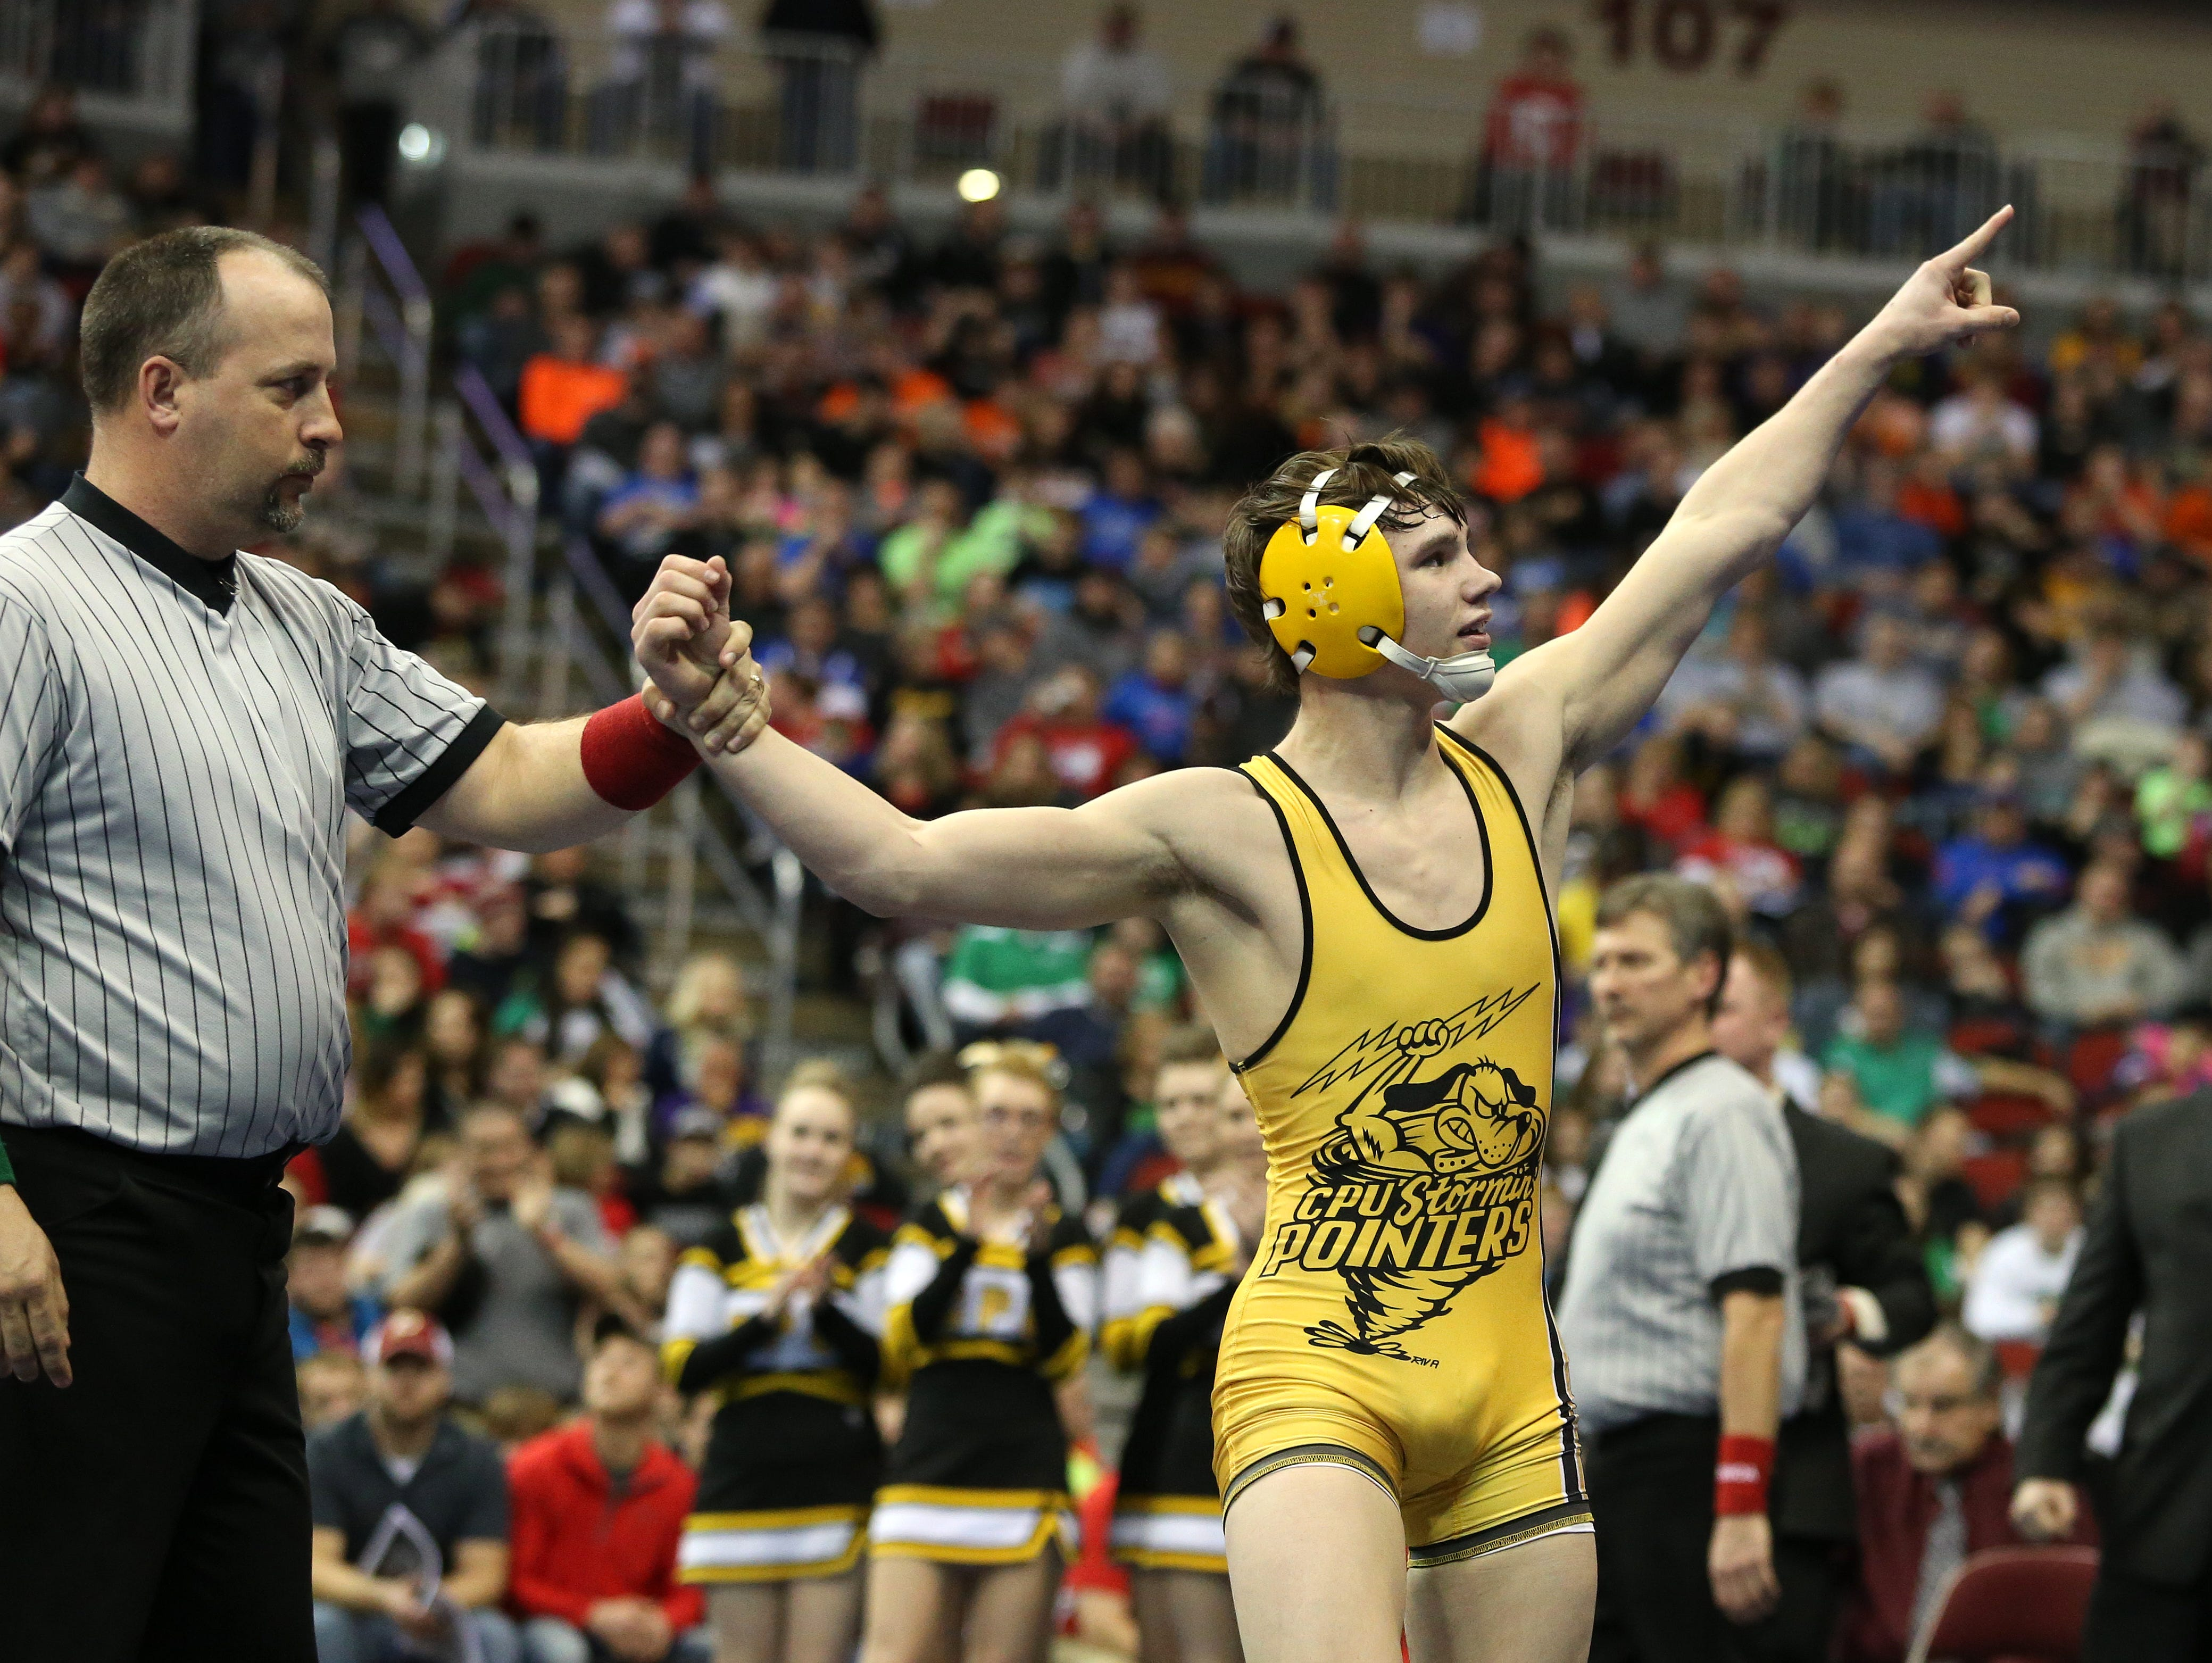 Center Point Urbana junior Brock Rathbun won a Class 2A title at 120 pounds over Seargant Bluff-Luton sophomore Brayden Curry on Saturday, Feb. 21, 2015, during the 2015 Iowa state wrestling championships at Wells Fargo Arena in Des Moines, Iowa.